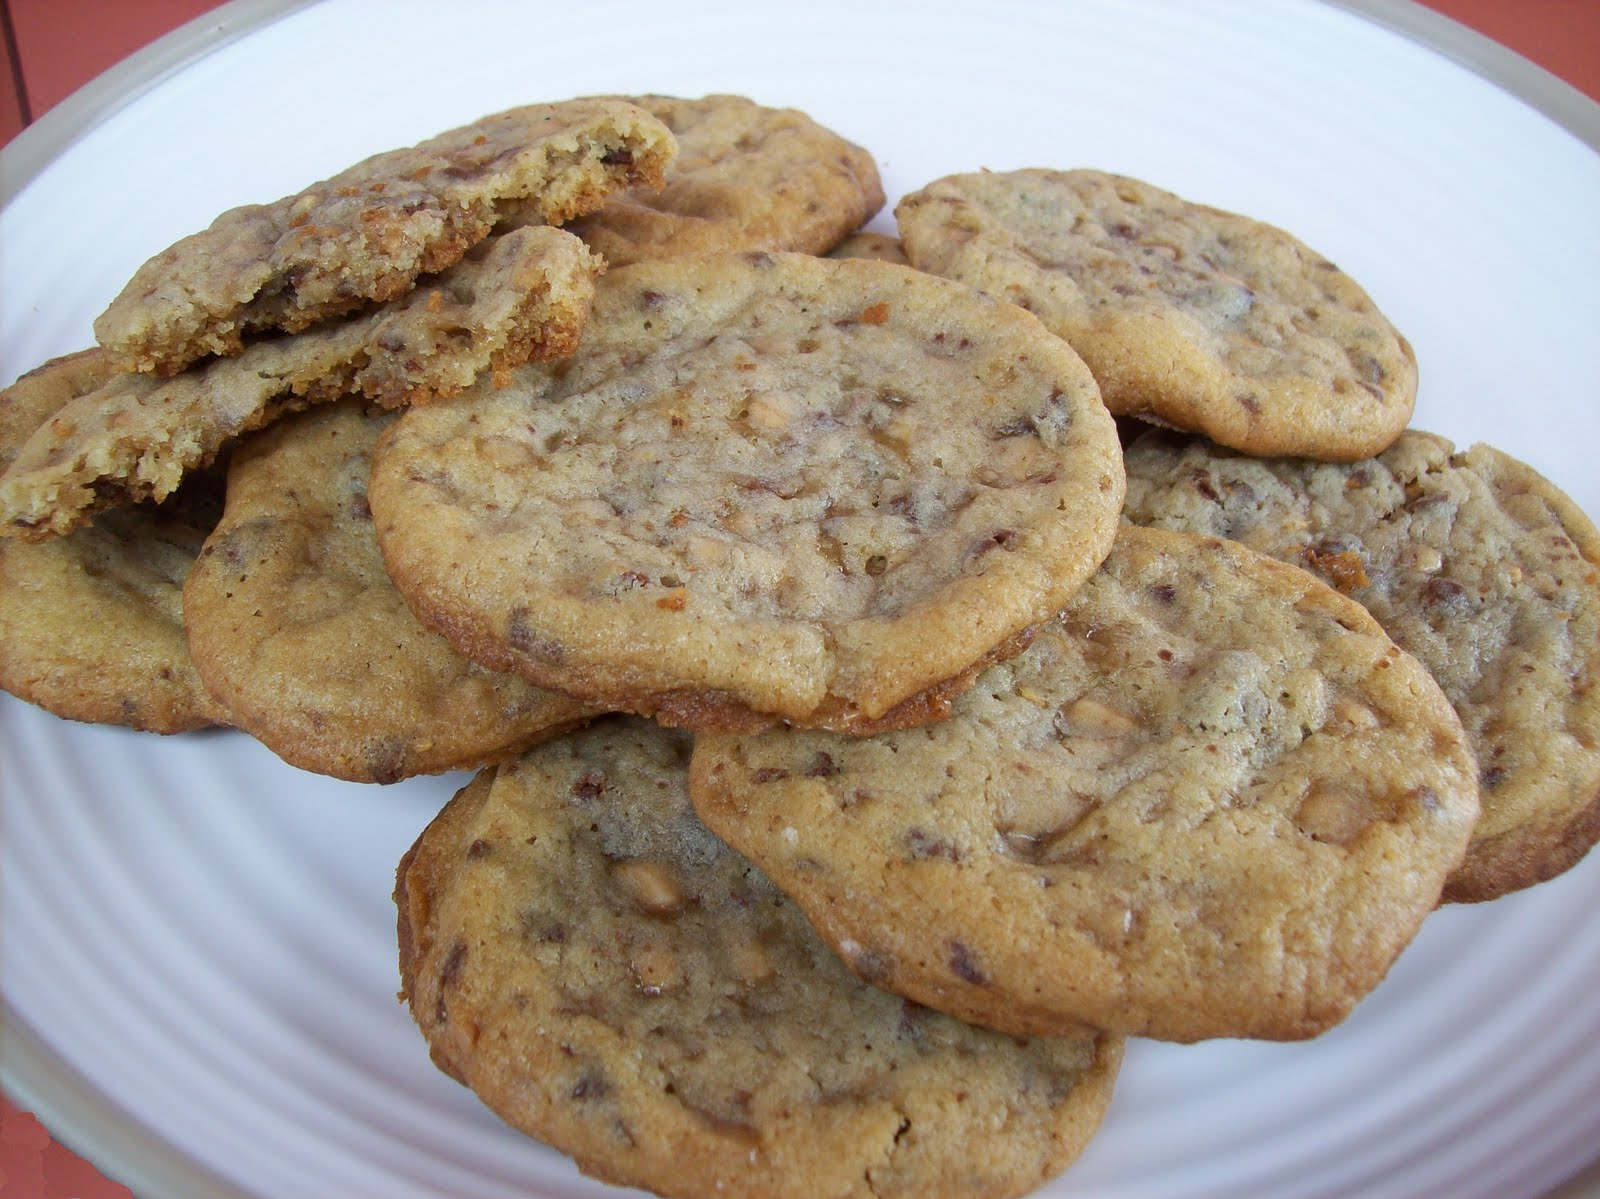 Delicious Discoveries: Heath Bar Cookies